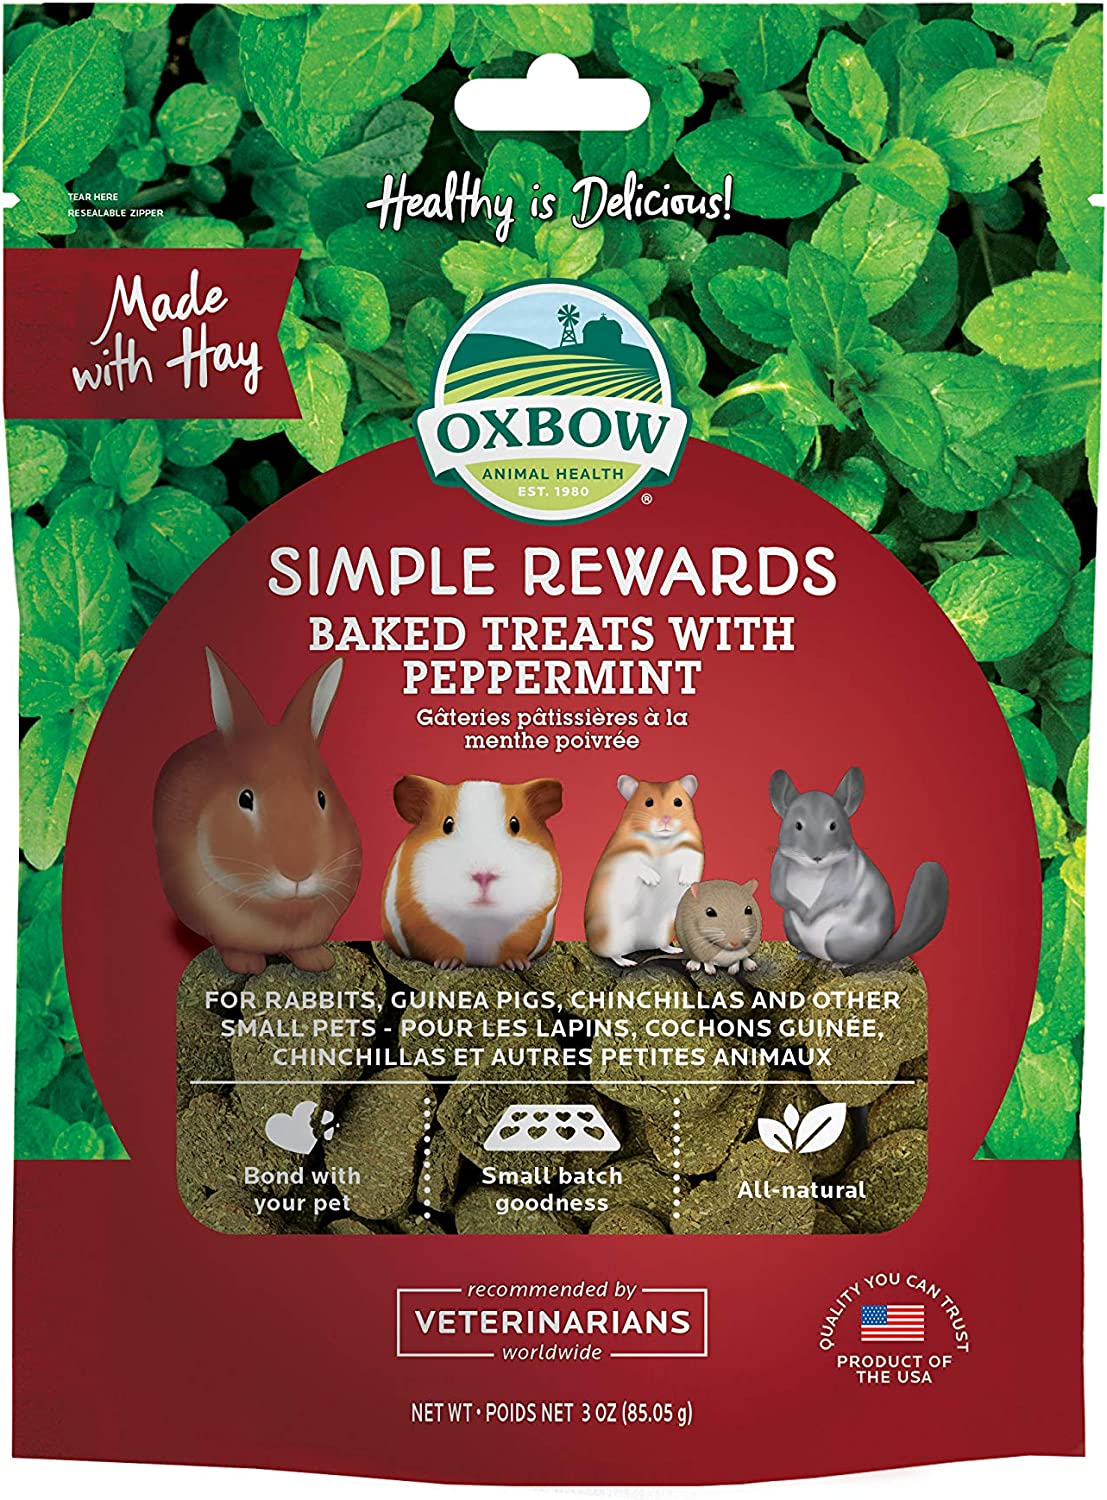 New Oxbow Simple Rewards All Natural Oven Baked Treats With Peppermint And Timothy Grass For Rabbits, Guinea Pigs, Hamsters And Other Small Pets 2Oz